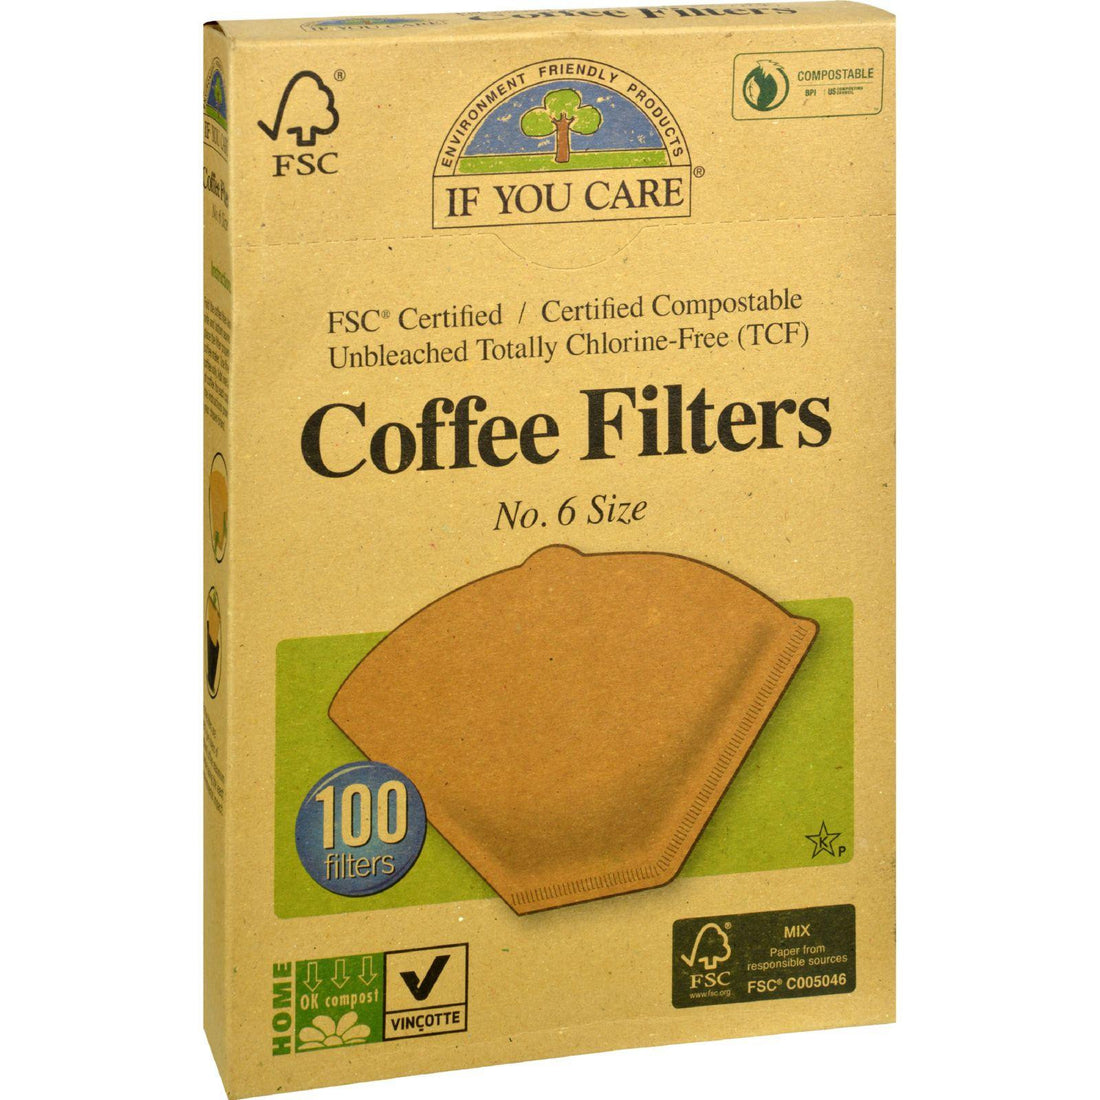 Mother Mantis: If You Care Coffee Filters - Brown - Cone - Number 6 - 100 Count If You Care